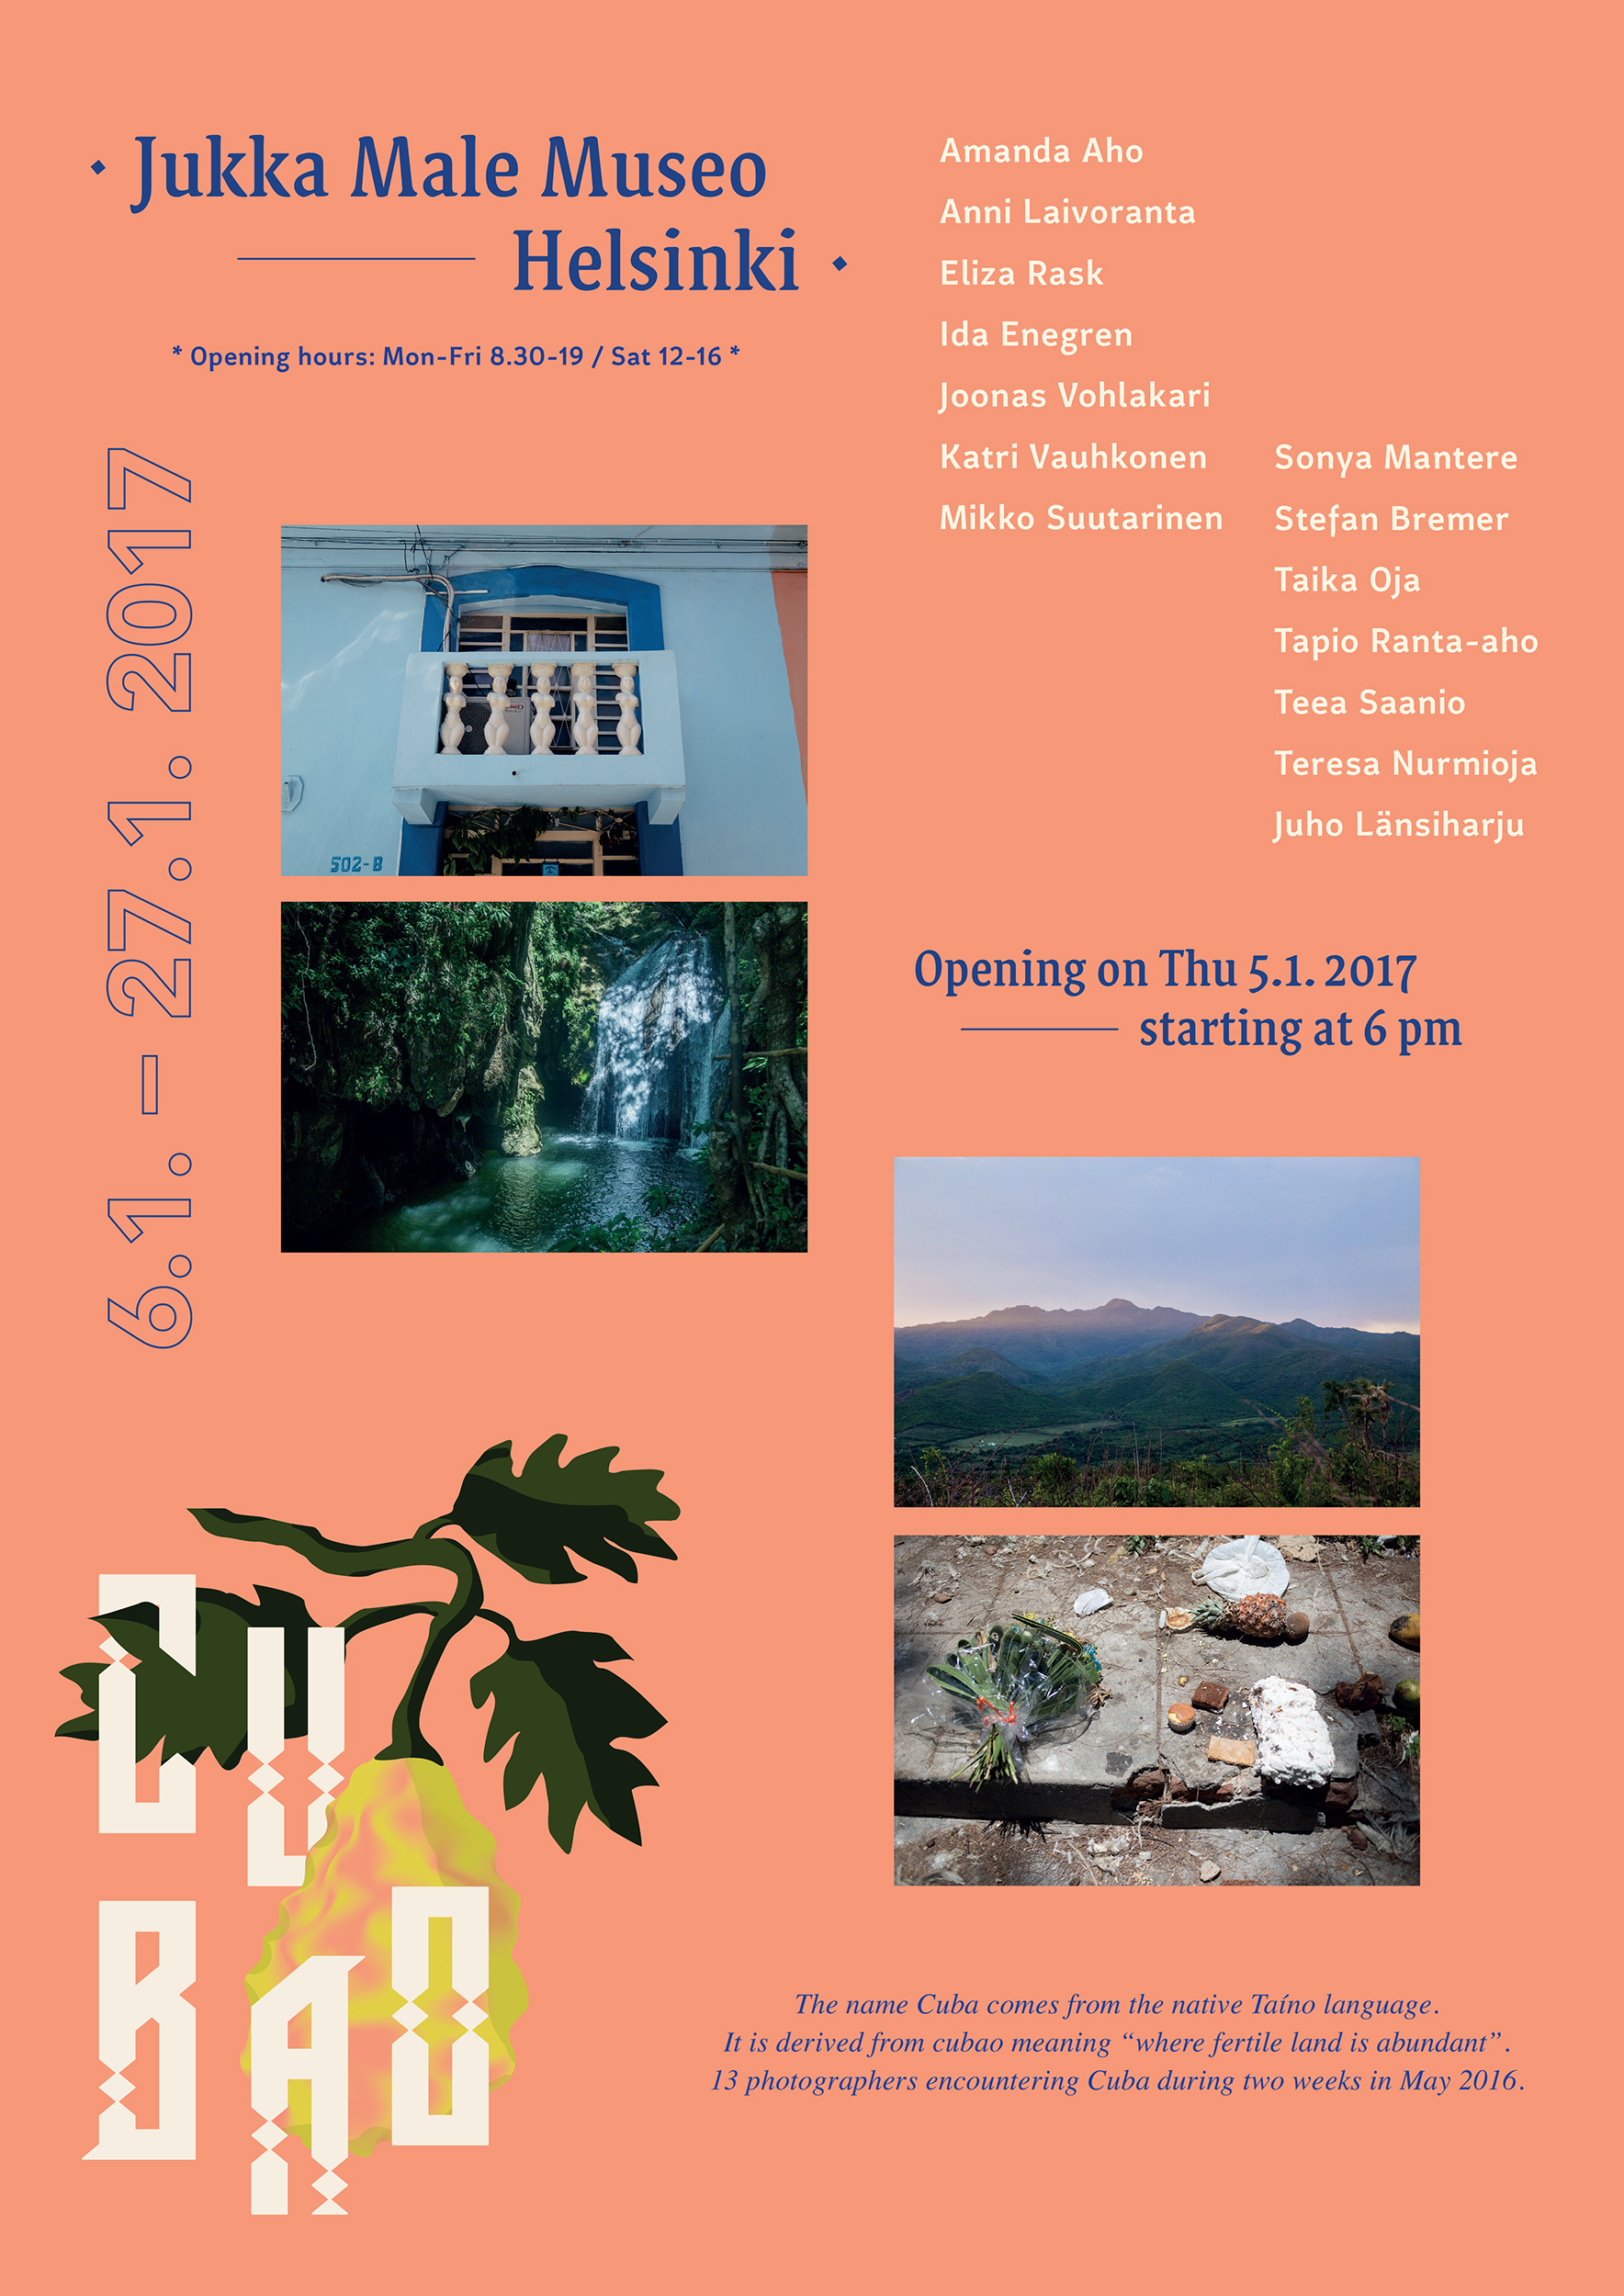 """Cubao @ Jukka Male Museo   The name Cuba comes from the native Taíno language. It is derived from cubao meaning """"where fertile land is abundant"""". 13 photographers encountering Cuba during two weeks in May 2016.  The exhibition is open: 6.1.2017-27.1.2017 Mon-Fri 8.30-19.00 Sat 12.00-16.00"""